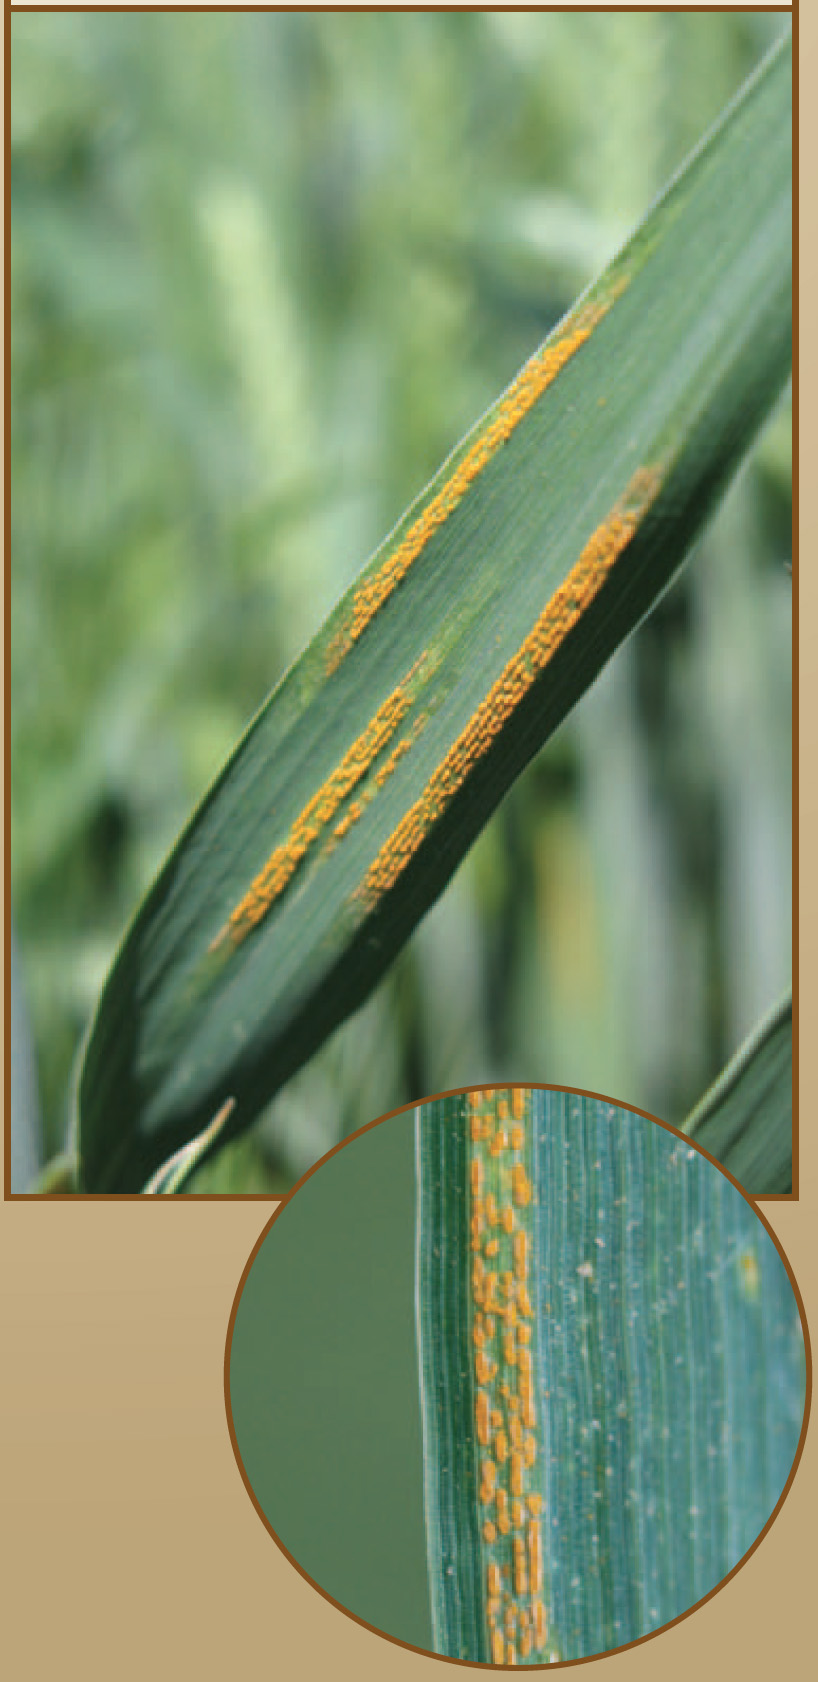 An example of stripe rust.